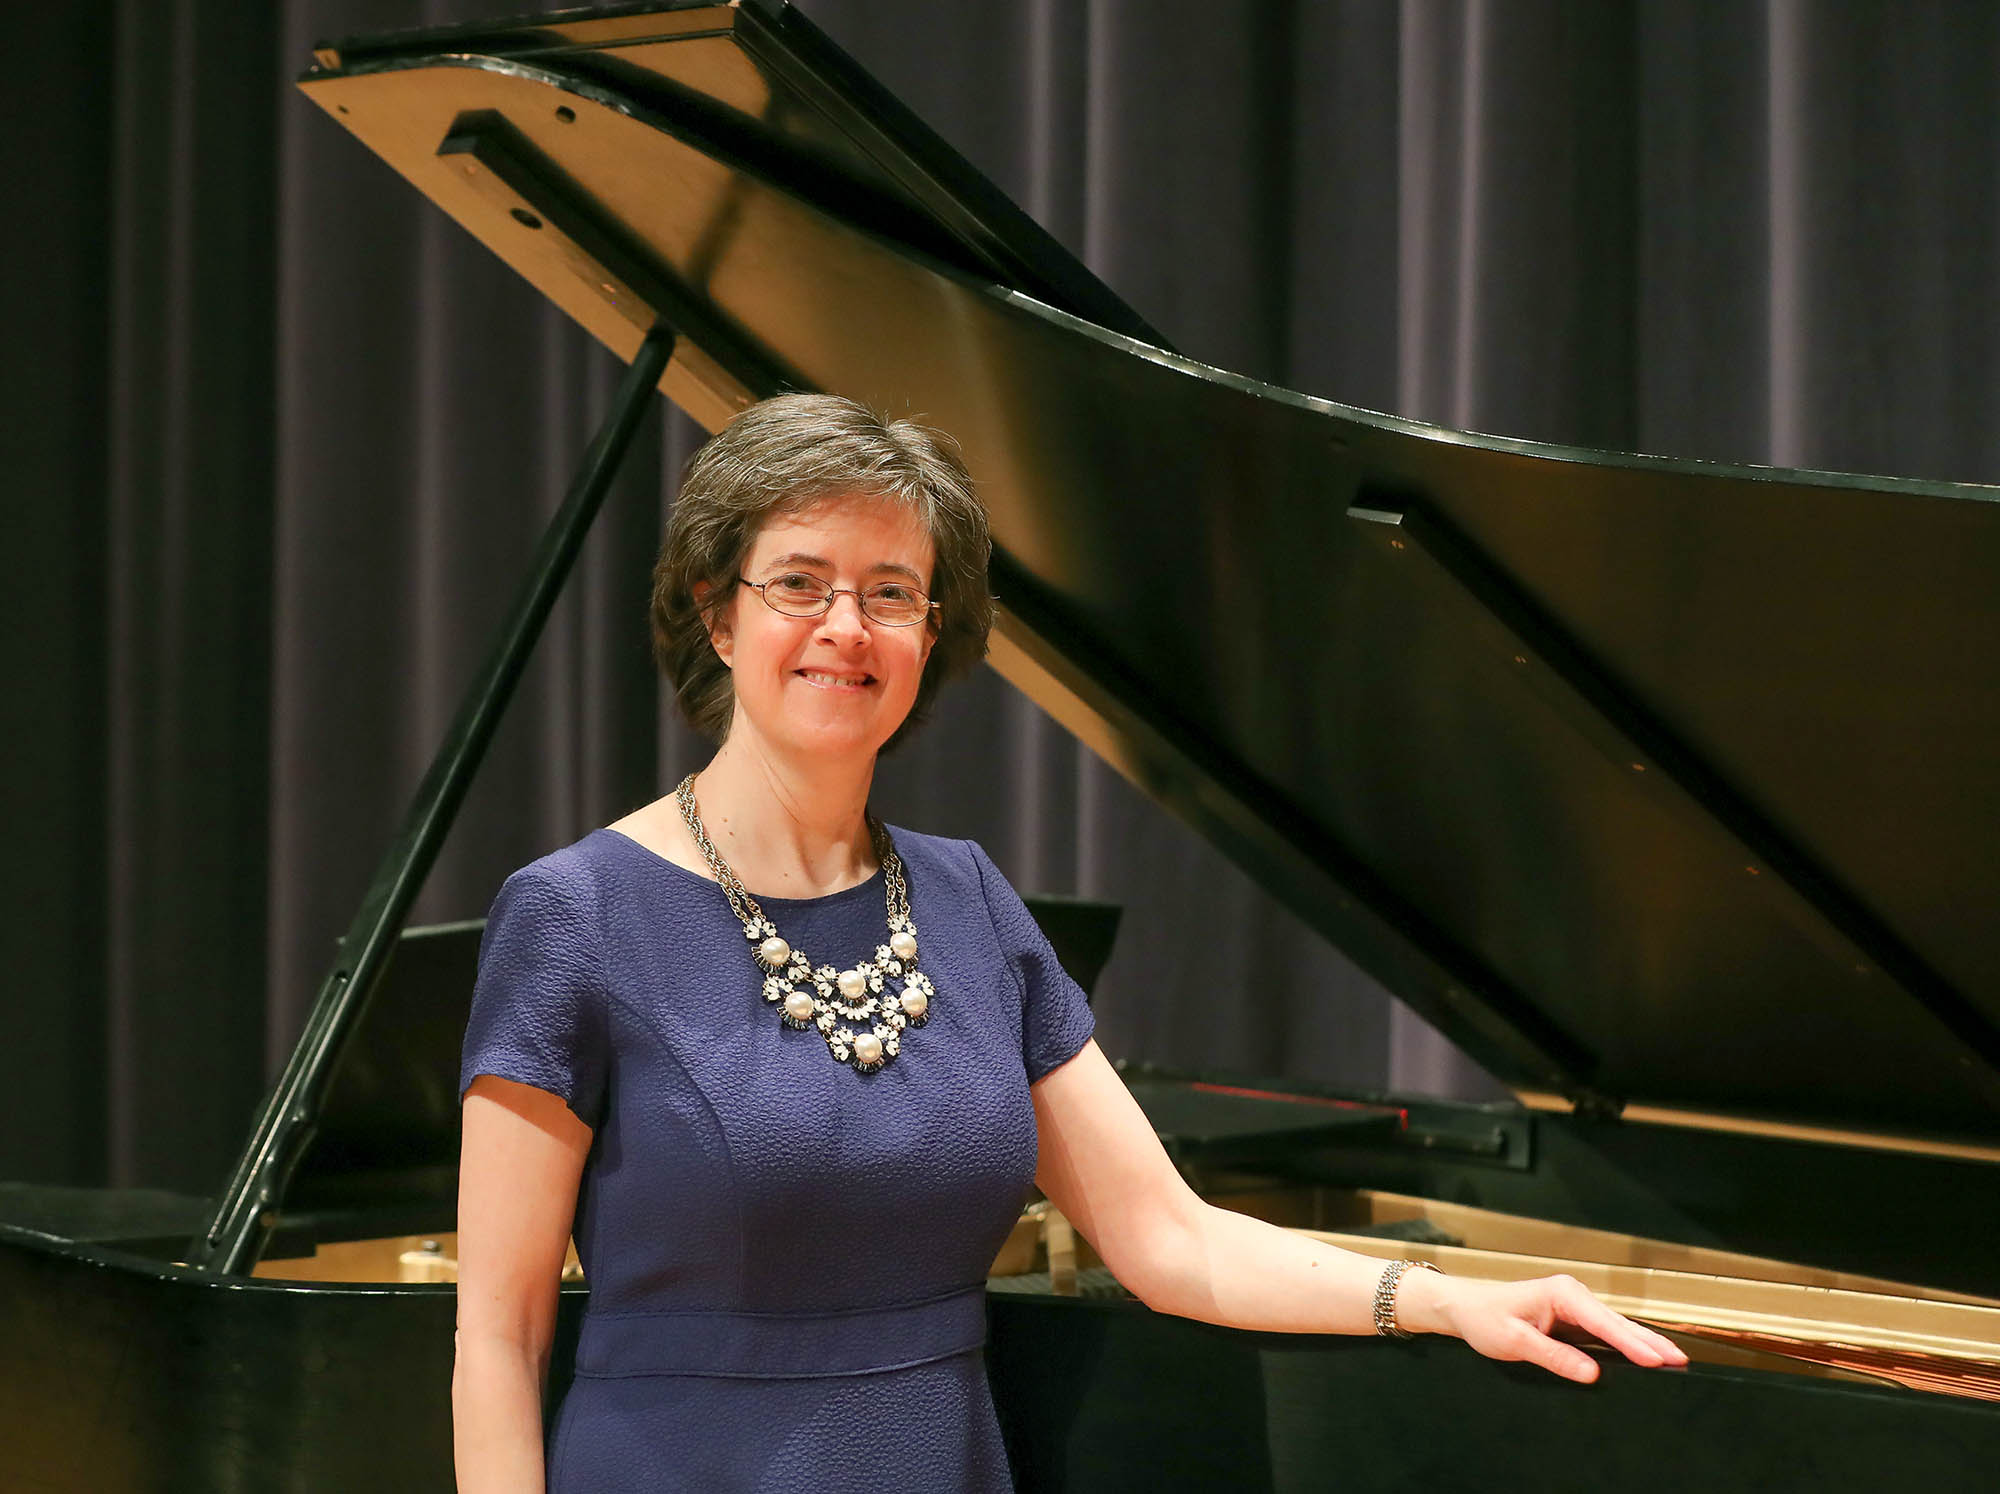 Associate professor of teacher education Dawn Mollenkopf will perform 3 p.m. Sunday in UNK's Fine Arts Recital Hall. It's the first full voice recital for Mollenkopf, who has severe-to-profound hearing loss. (Photos by Corbey R. Dorsey, UNK Communications)